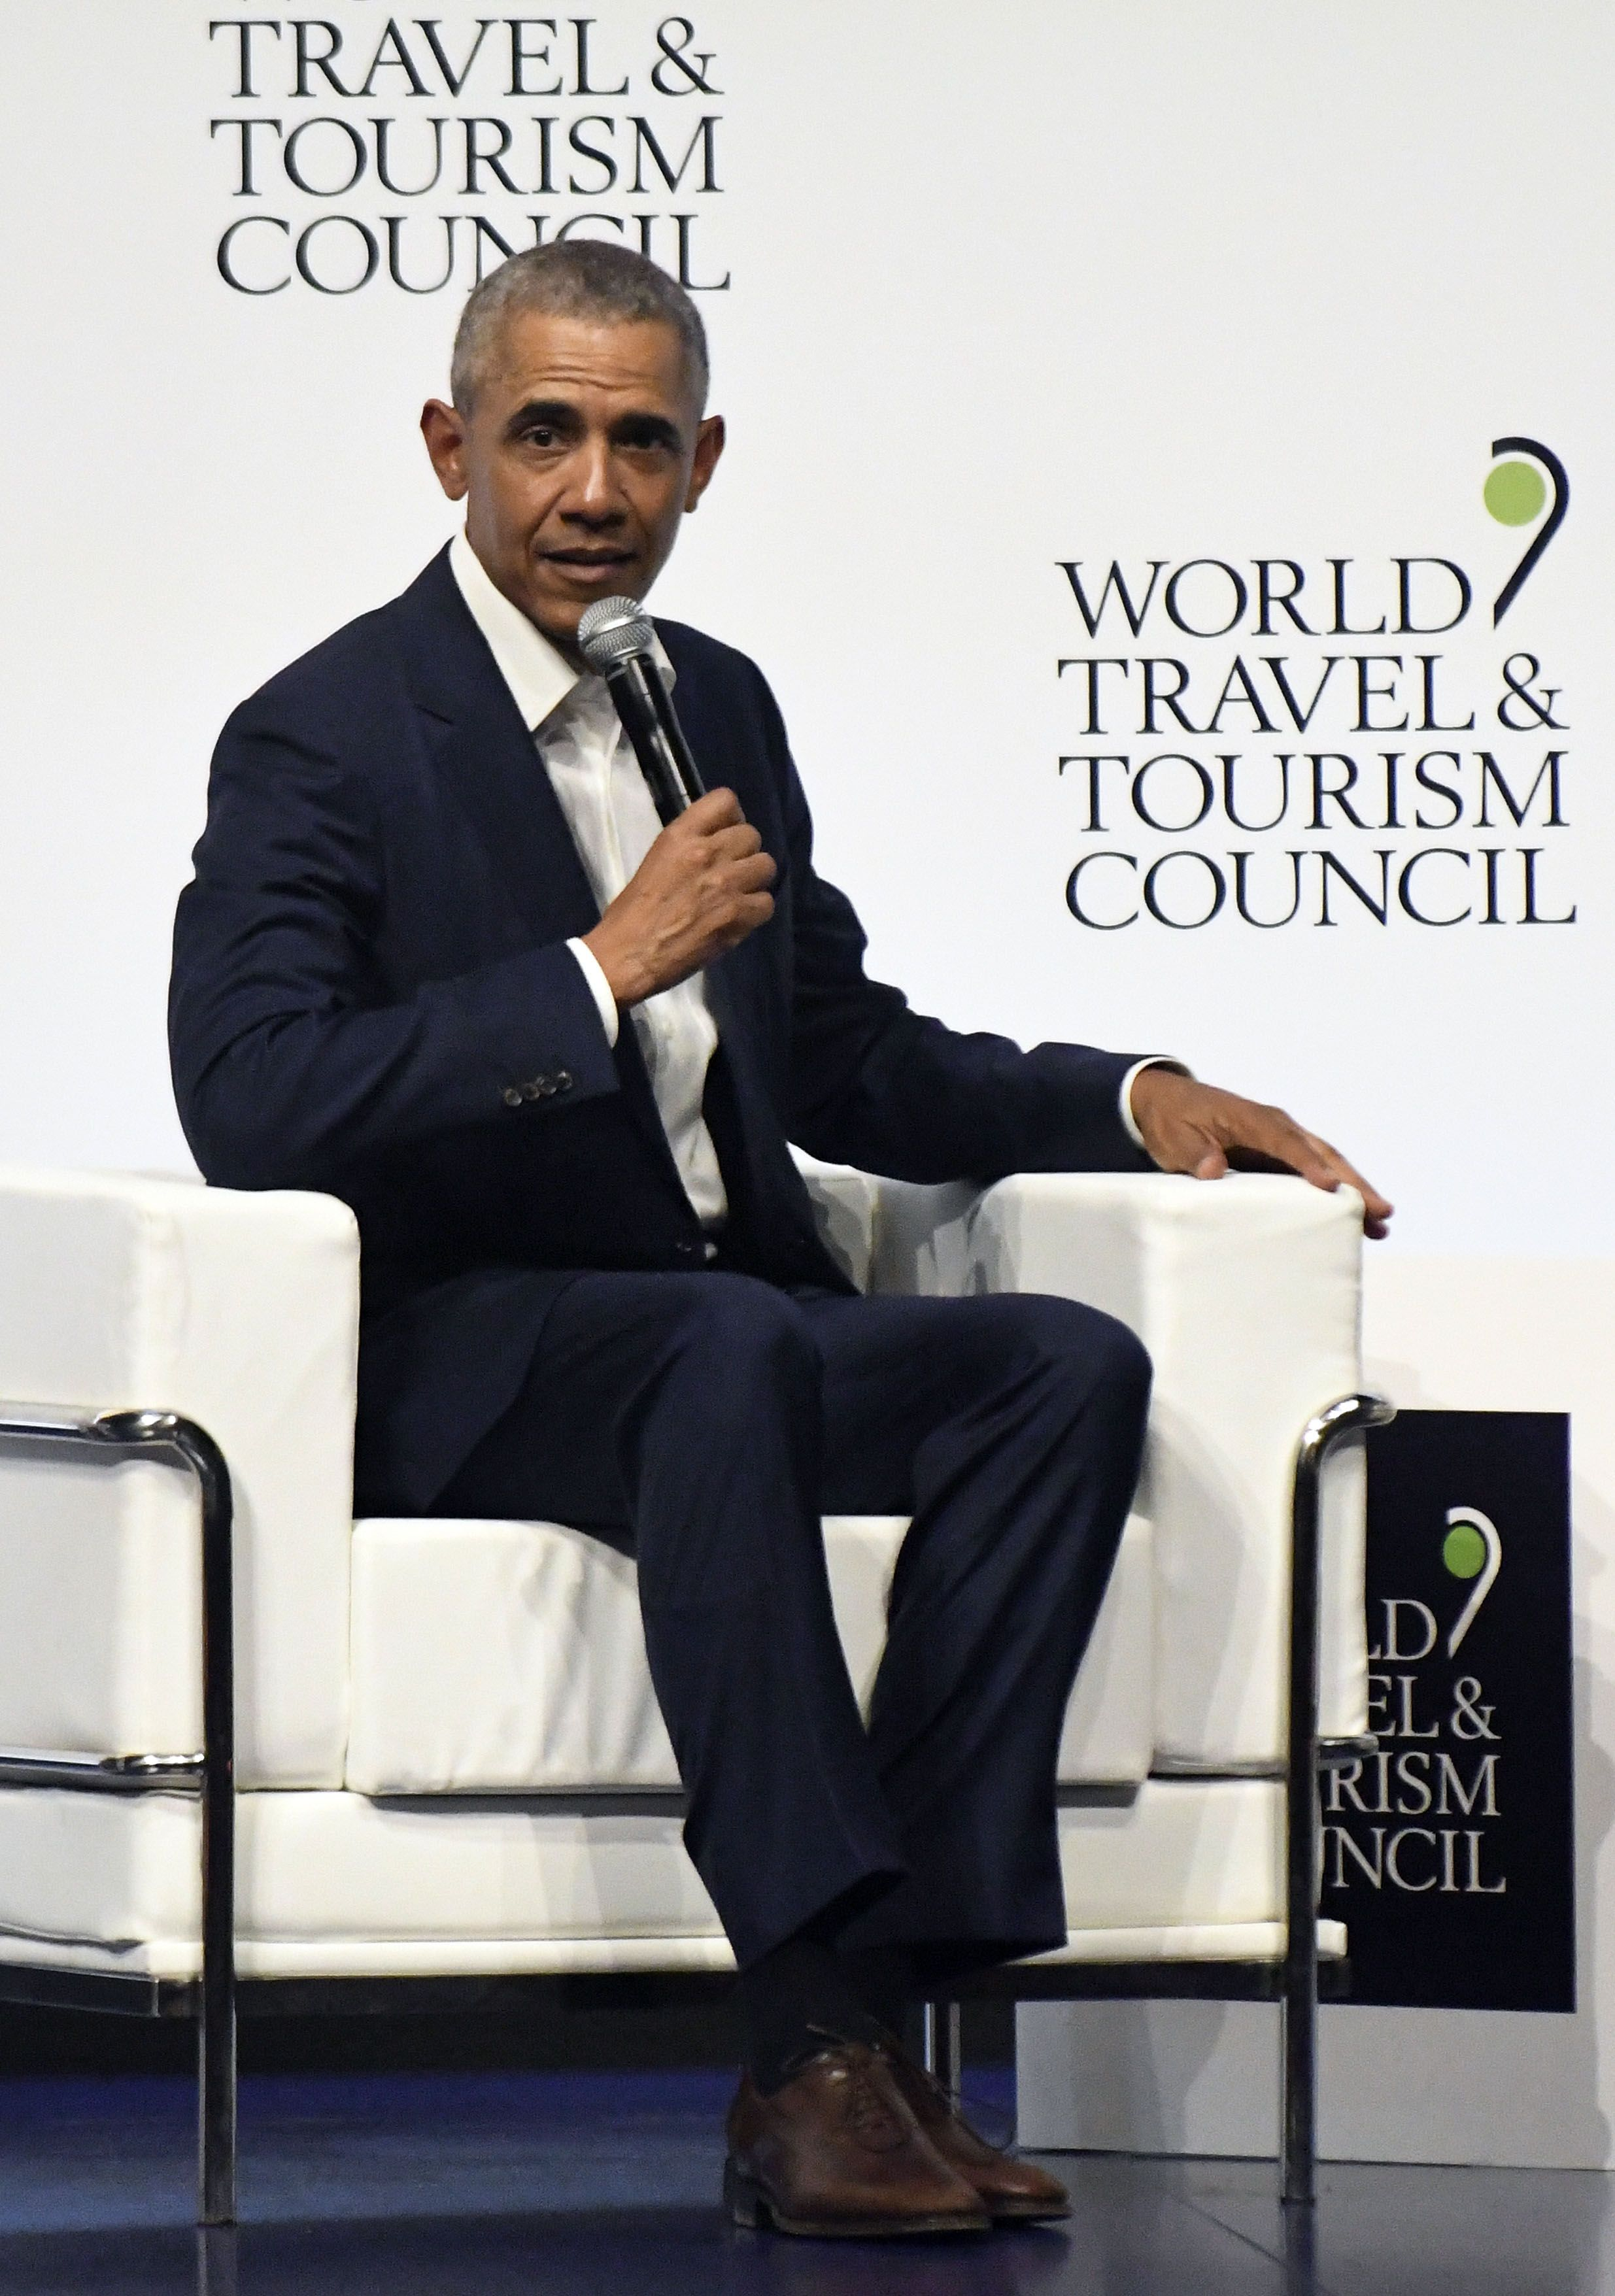 Barack Obama Made a Very Stylish Appearance at the World Travel & Tourism Council Forum